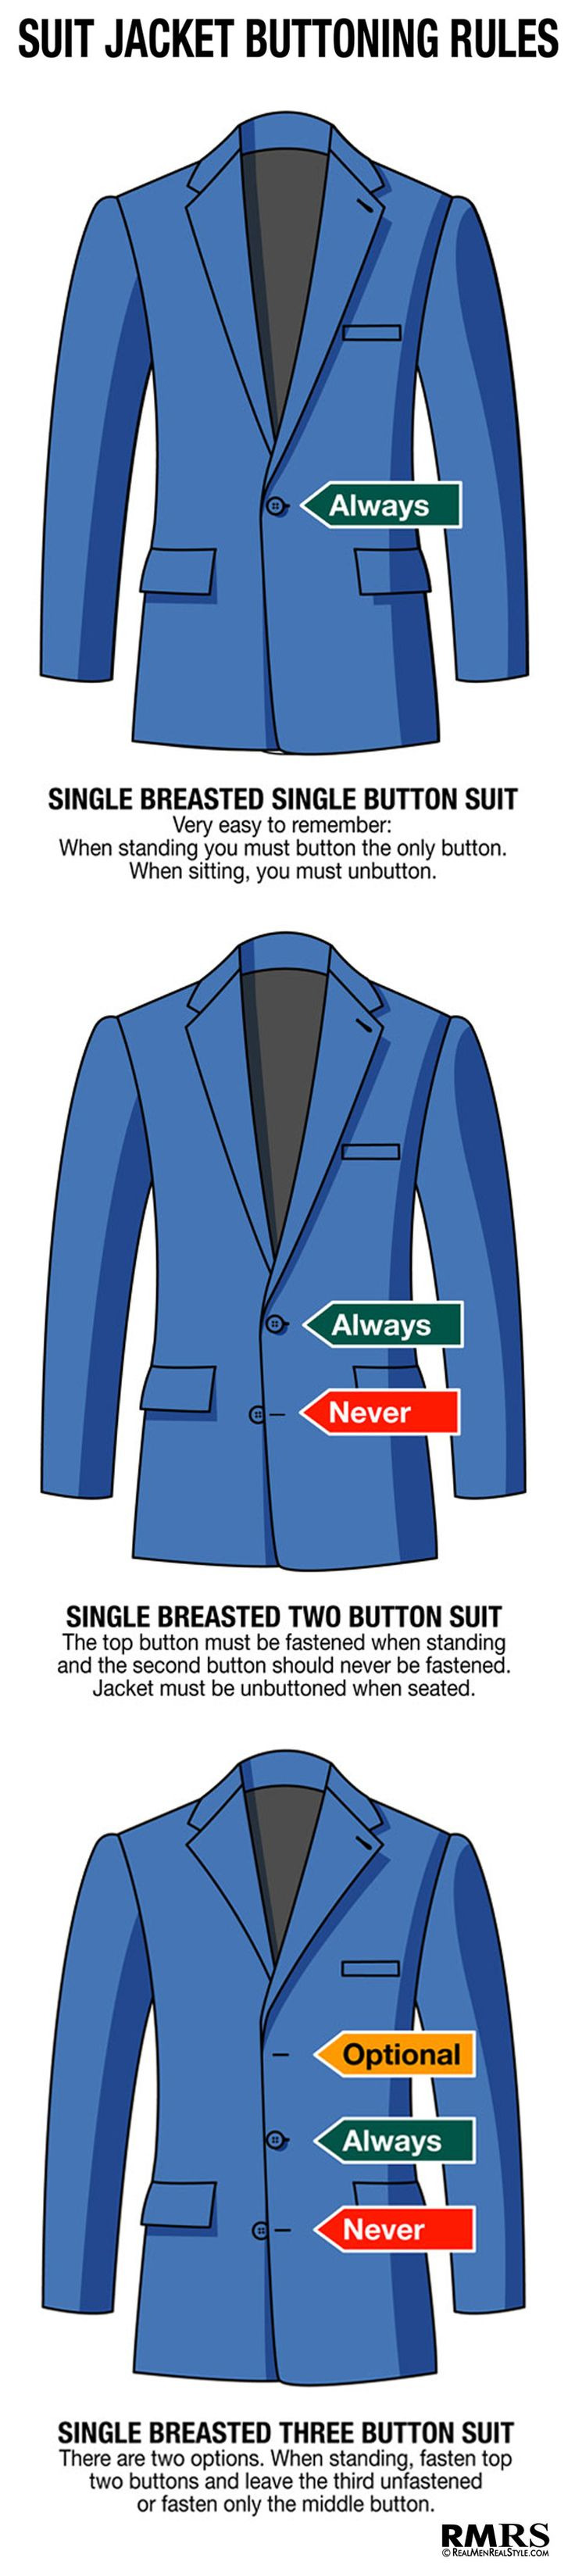 Mens jacket button rules - How To Button Your Suit Correctly